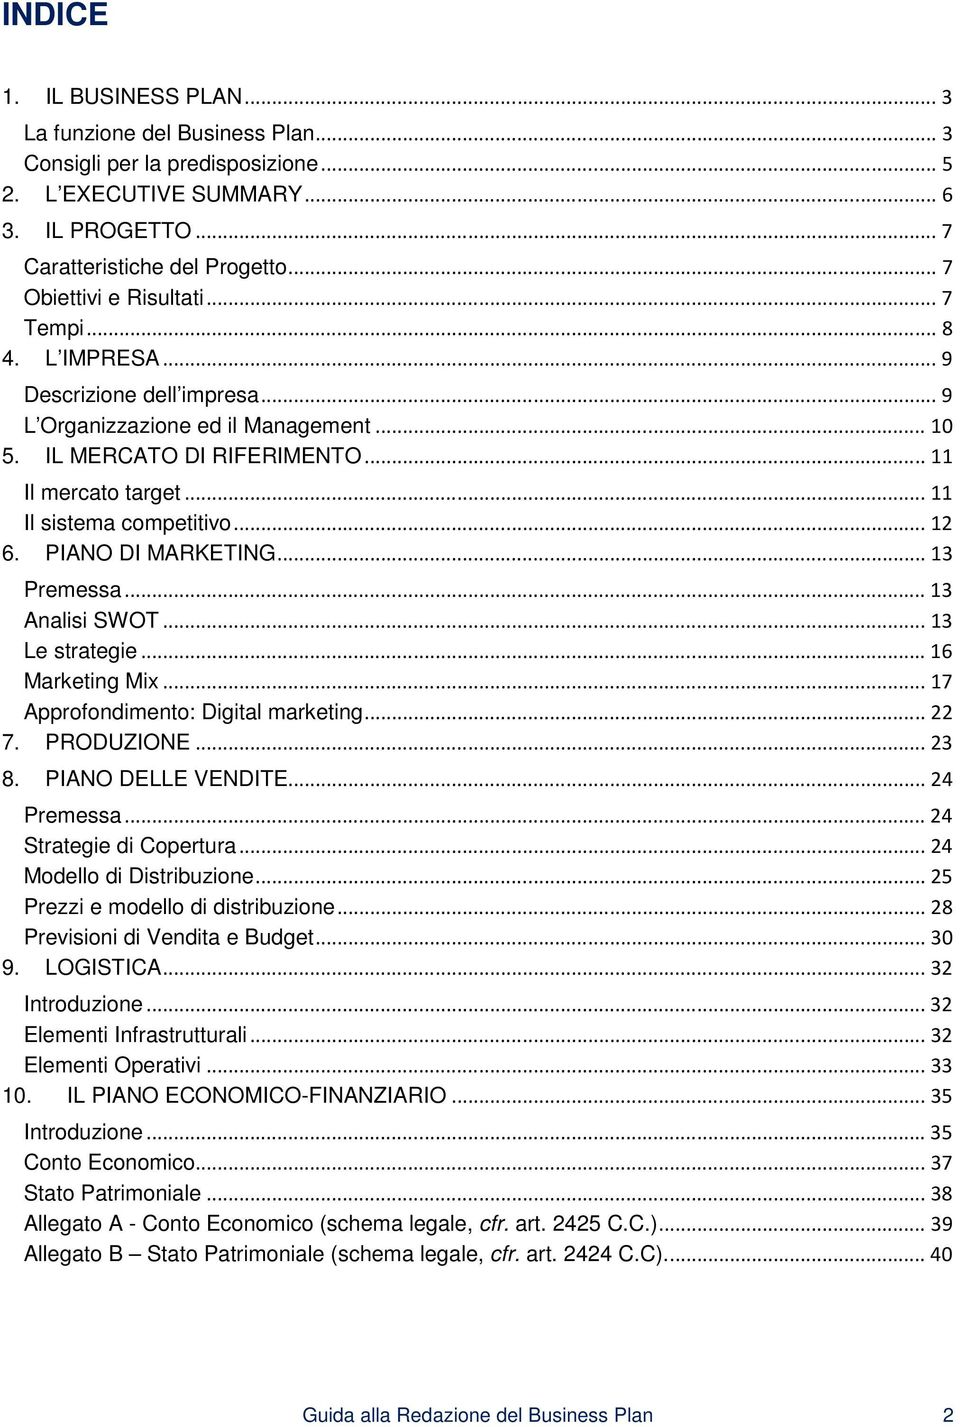 .. 11 Il sistema competitivo... 12 6. PIANO DI MARKETING... 13 Premessa... 13 Analisi SWOT... 13 Le strategie... 16 Marketing Mix... 17 Approfondimento: Digital marketing... 22 7. PRODUZIONE... 23 8.